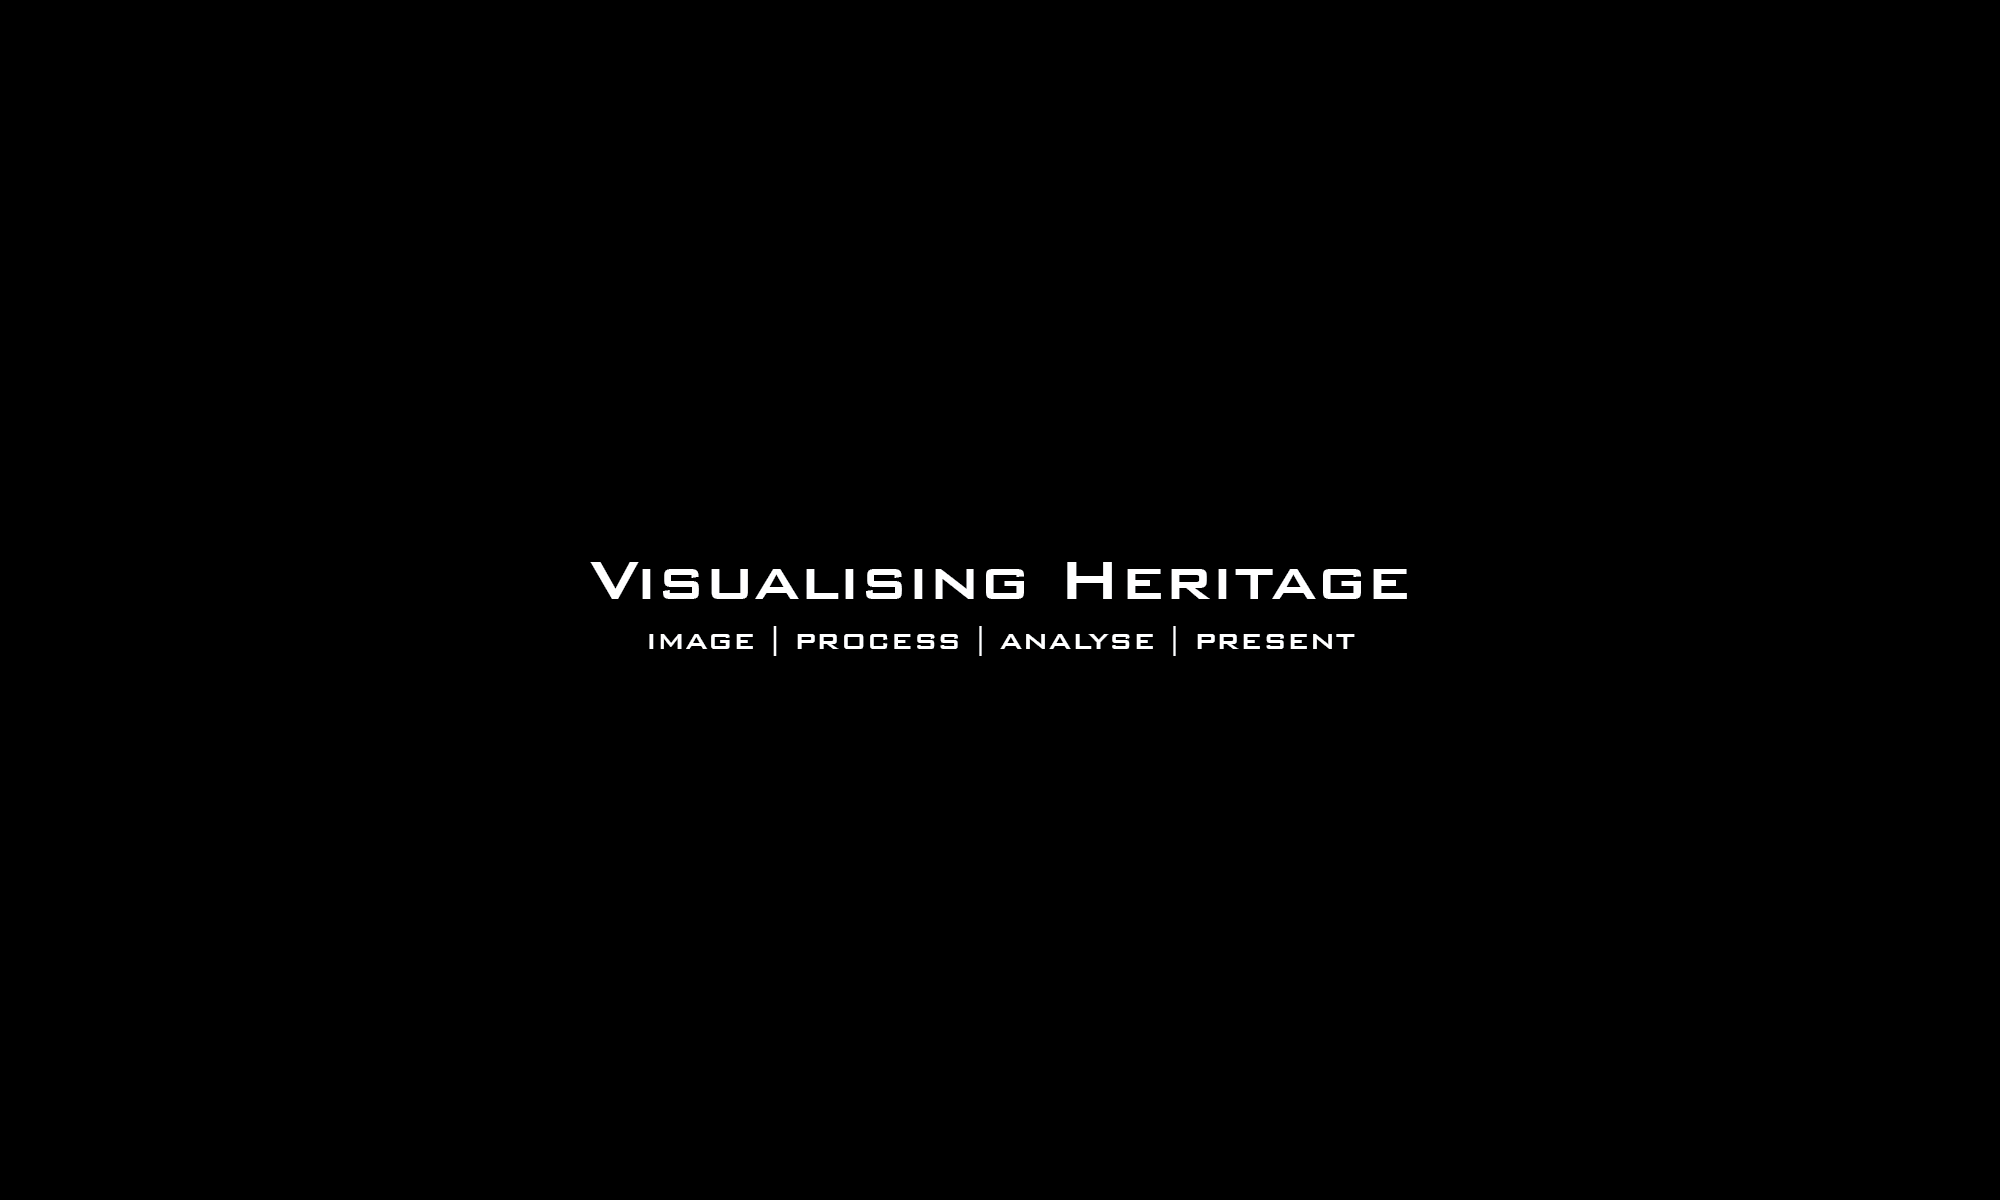 Visualising Heritage